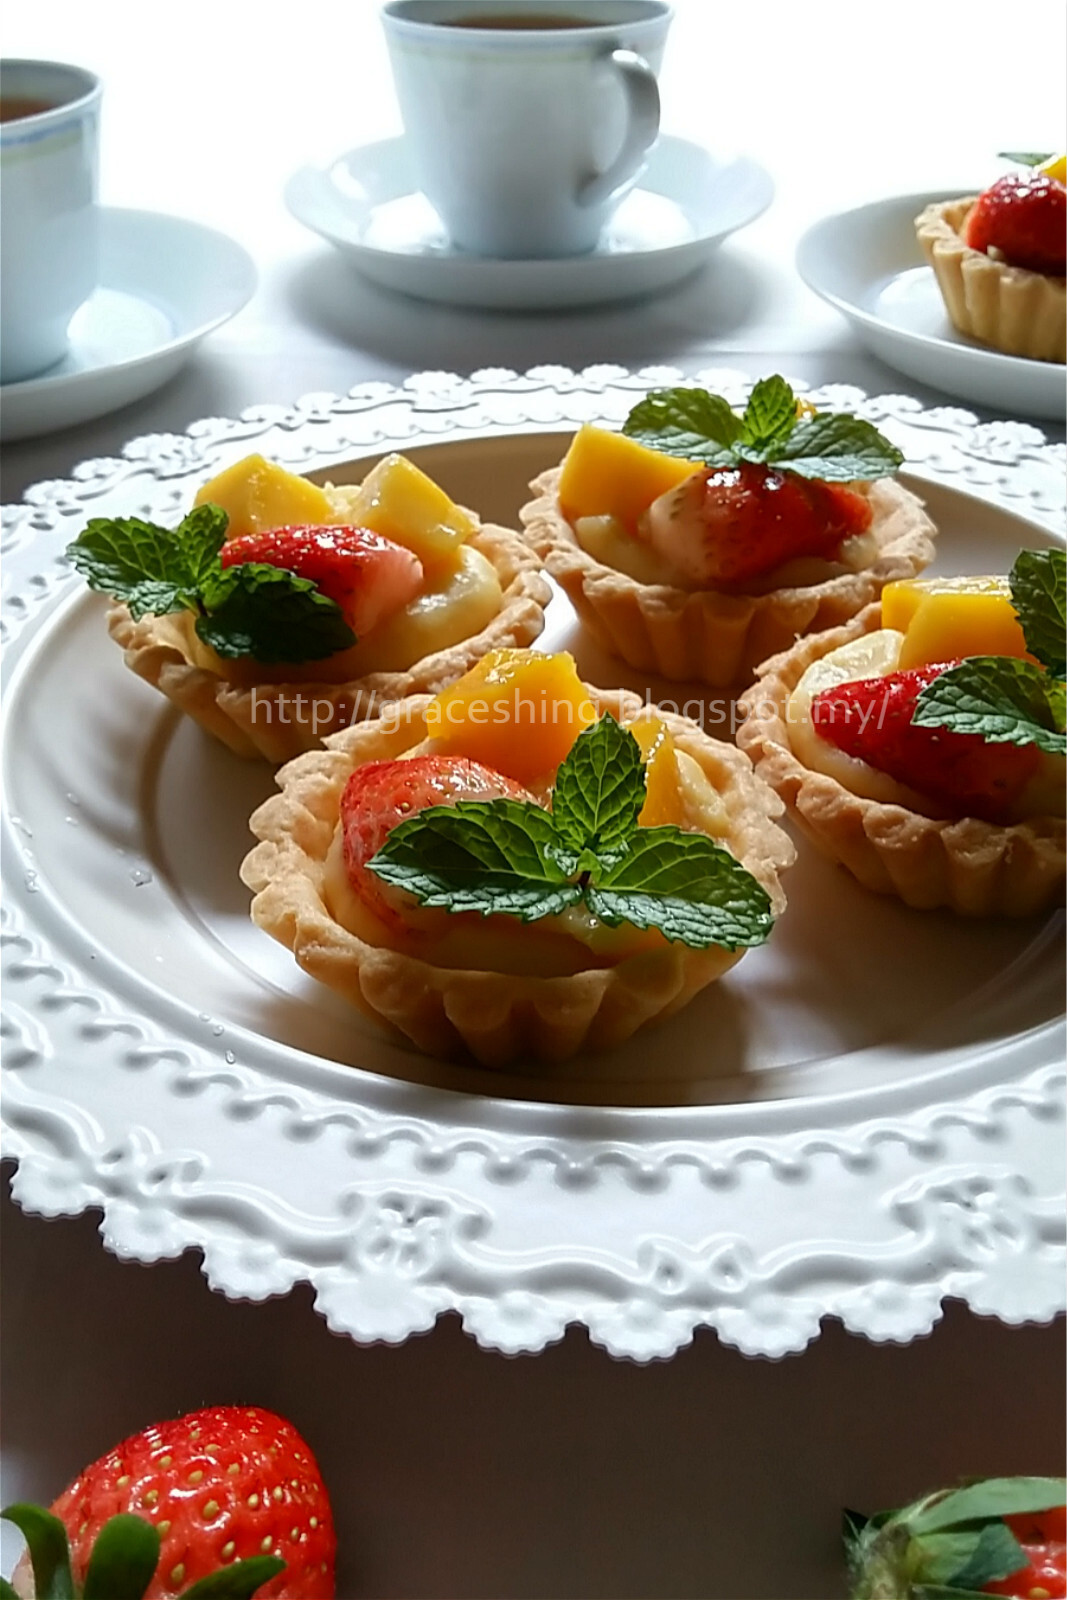 水果塔 Fruit Tarts